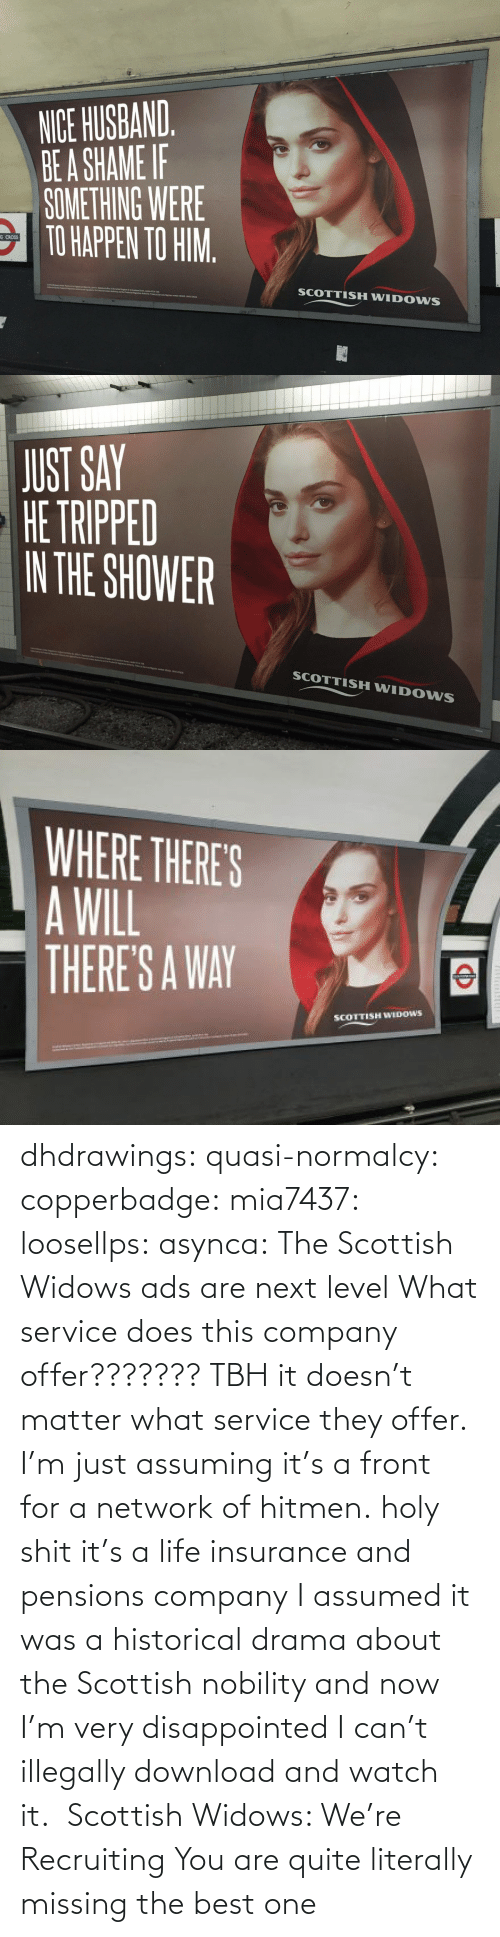 service: dhdrawings:  quasi-normalcy:  copperbadge:  mia7437:  loosellps:  asynca: The Scottish Widows ads are next level What service does this company offer??????? TBH it doesn't matter what service they offer. I'm just assuming it's a front for a network of hitmen.  holy shit it's a life insurance and pensions company  I assumed it was a historical drama about the Scottish nobility and now I'm very disappointed I can't illegally download and watch it.     Scottish Widows: We're Recruiting    You are quite literally missing the best one